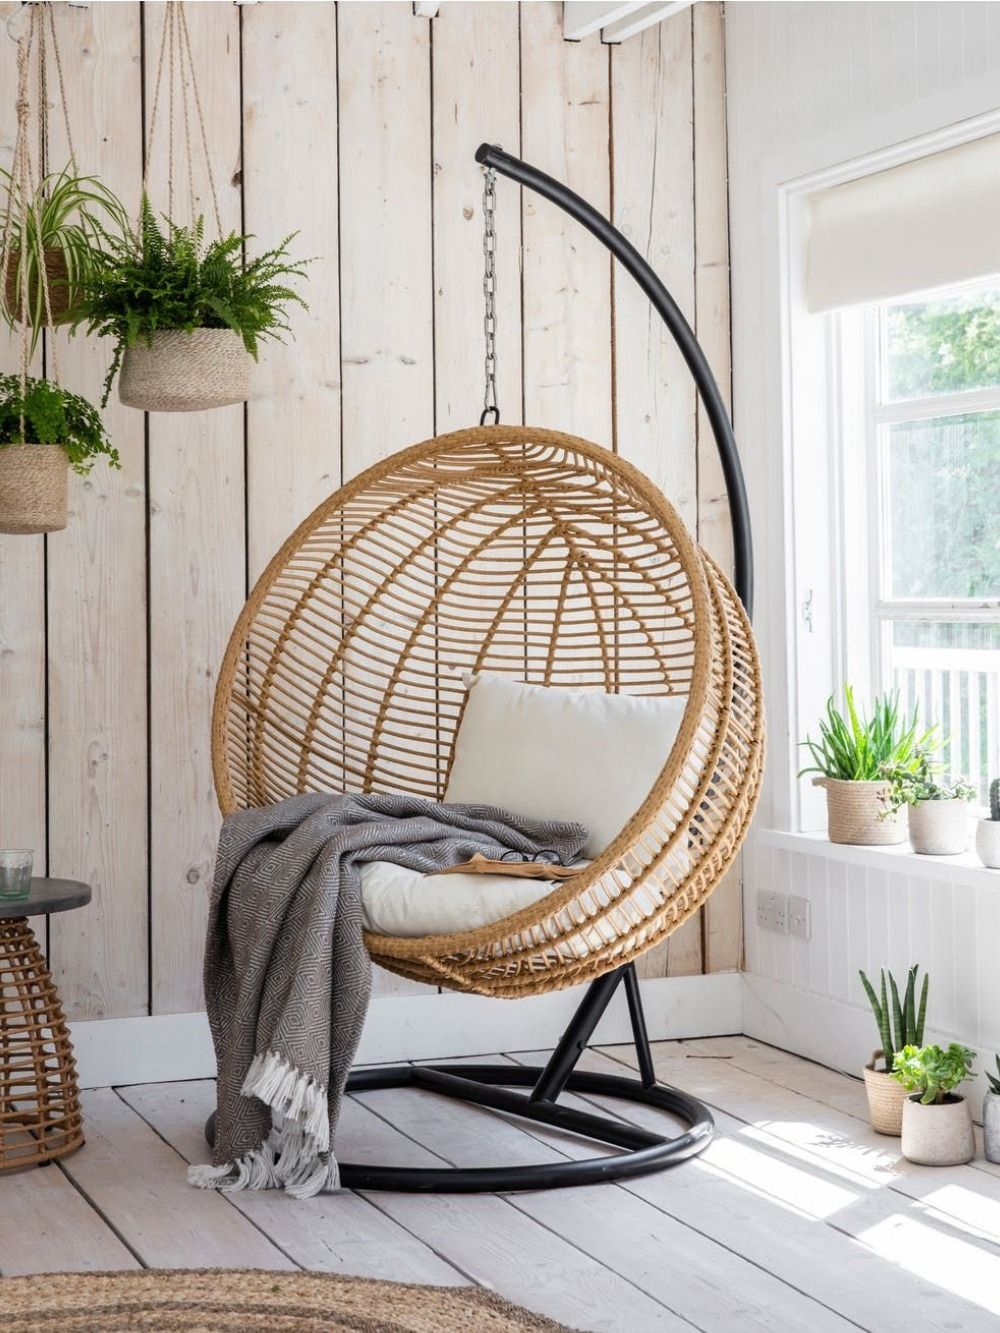 7 Luxury Hanging Egg Chairs You Ll Want To Lounge In Forever In 2020 Hanging Egg Chair Nest Chair Indoor Chairs